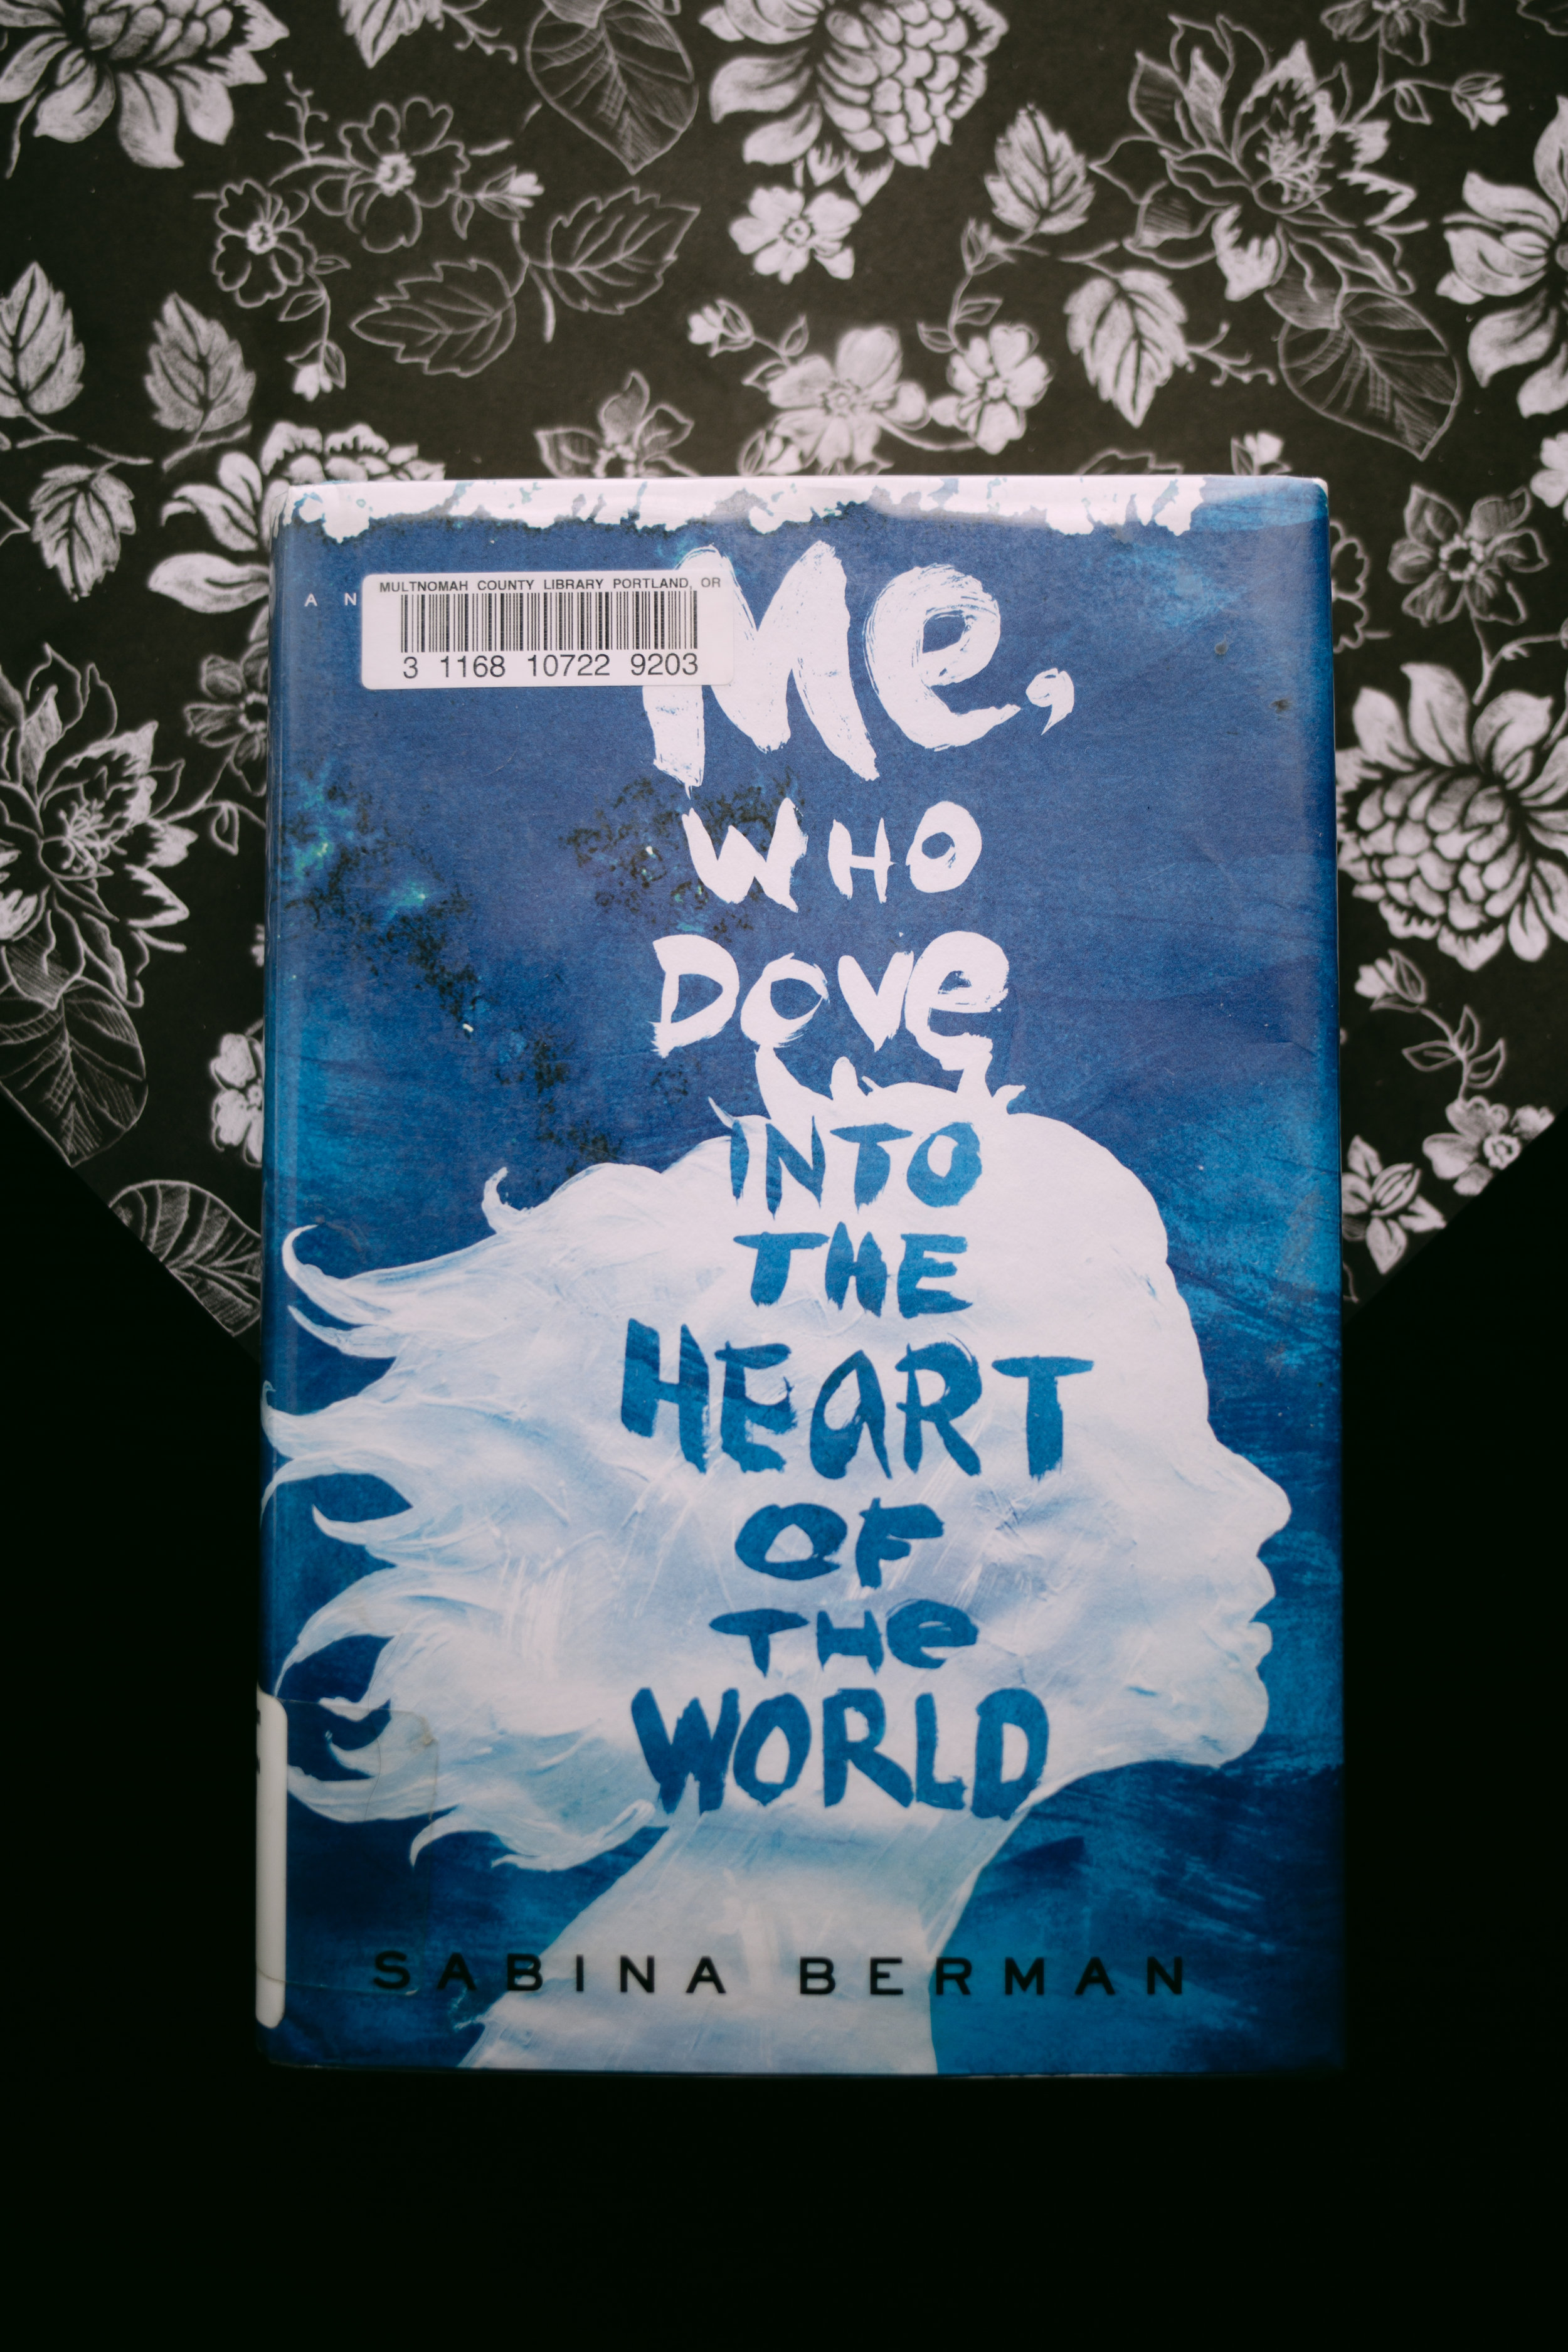 Me, Who Dove into the Heart of the World - by Sabina BermanWell, in a word, this was brilliant. It's the story of a girl who is autistic, who goes on to become very successful in the fishing/agriculture industry, while also considering environmental and moral impacts of killing animals for food. It was really poignant and beautiful and not at all what I expected when I picked it up (I try to go in knowing nothing about a book). This is definitely one that I will be purchasing for my bookshelf to read again. Absolutely beautiful.